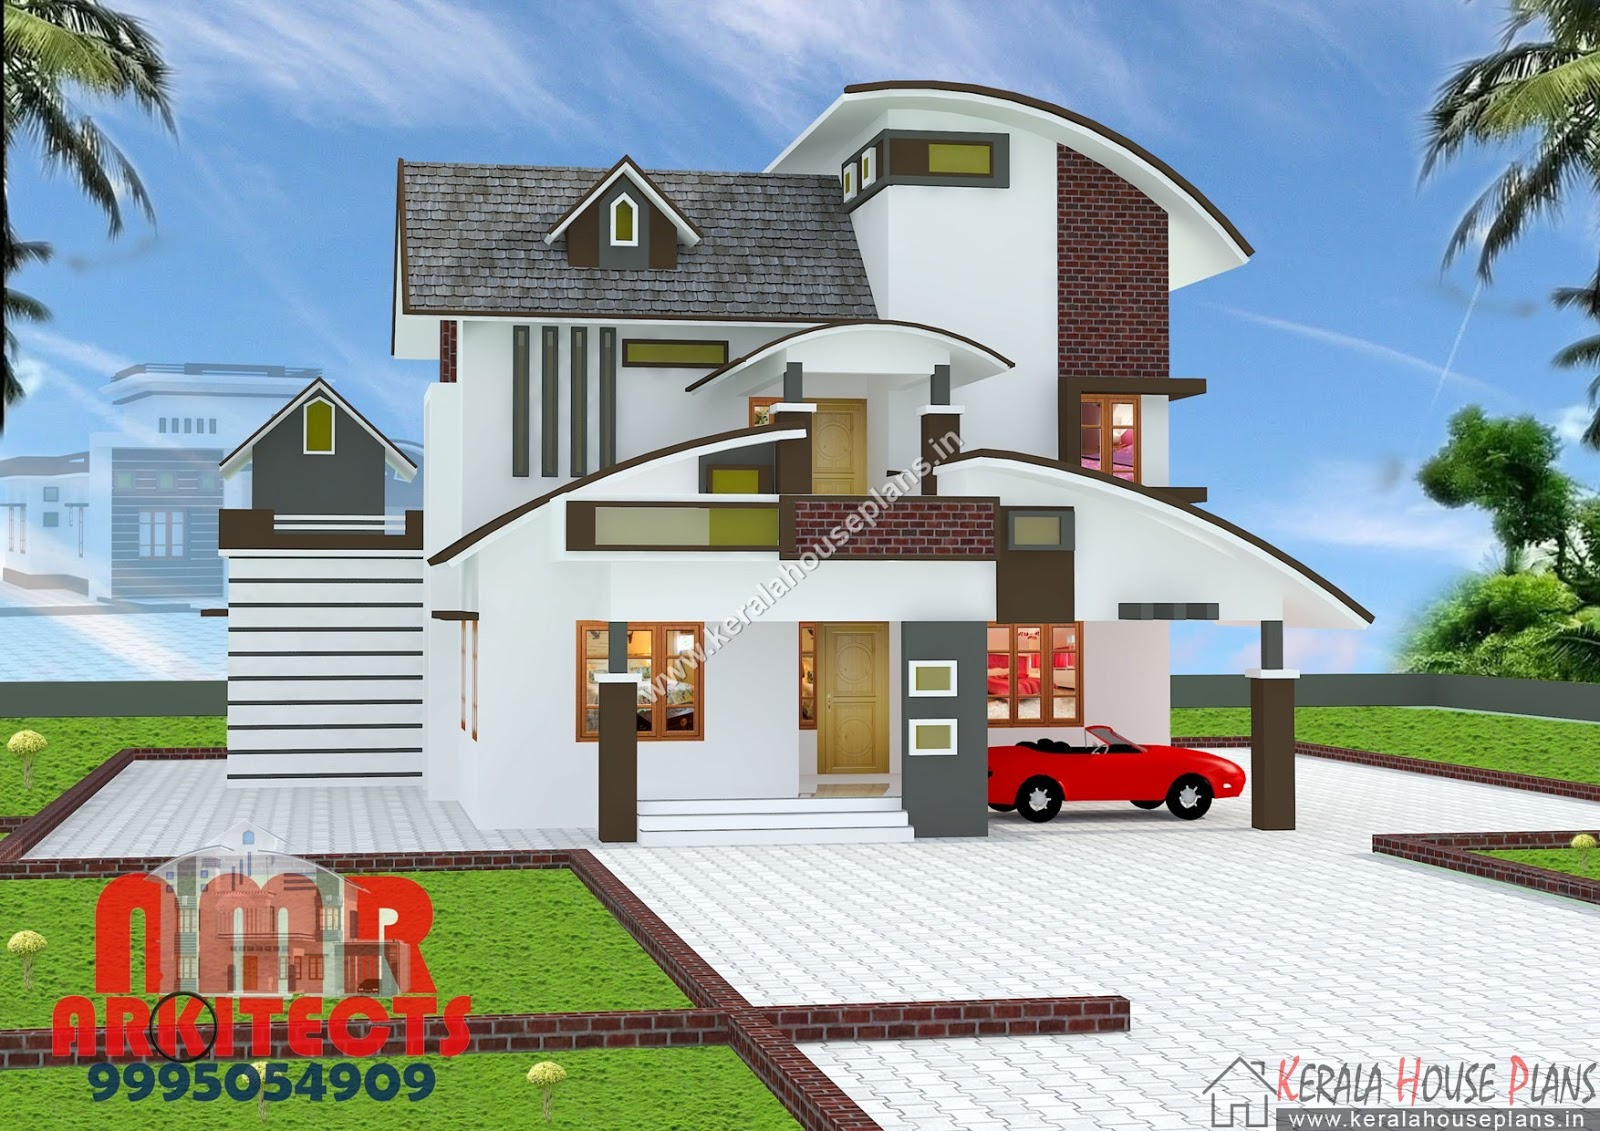 kerala mixed roof House plan